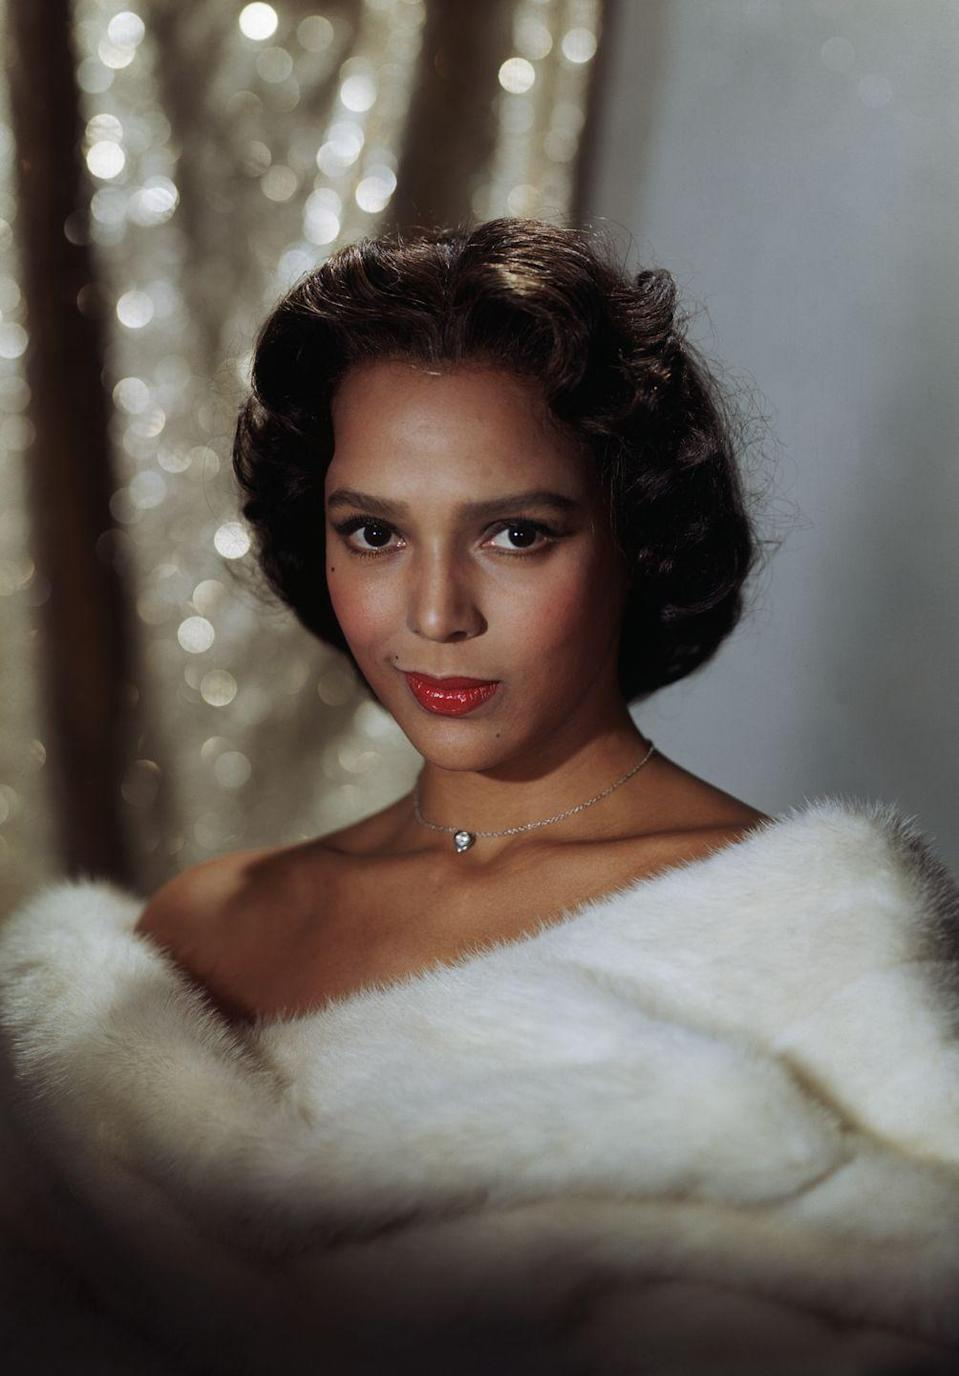 <p>After her solo debut, Dandridge's talents led her to a successful film career. In 1941 alone, she appeared in four films, including<em> Lady from Louisiana</em> and <em>Sun Valley Serenade.</em></p>